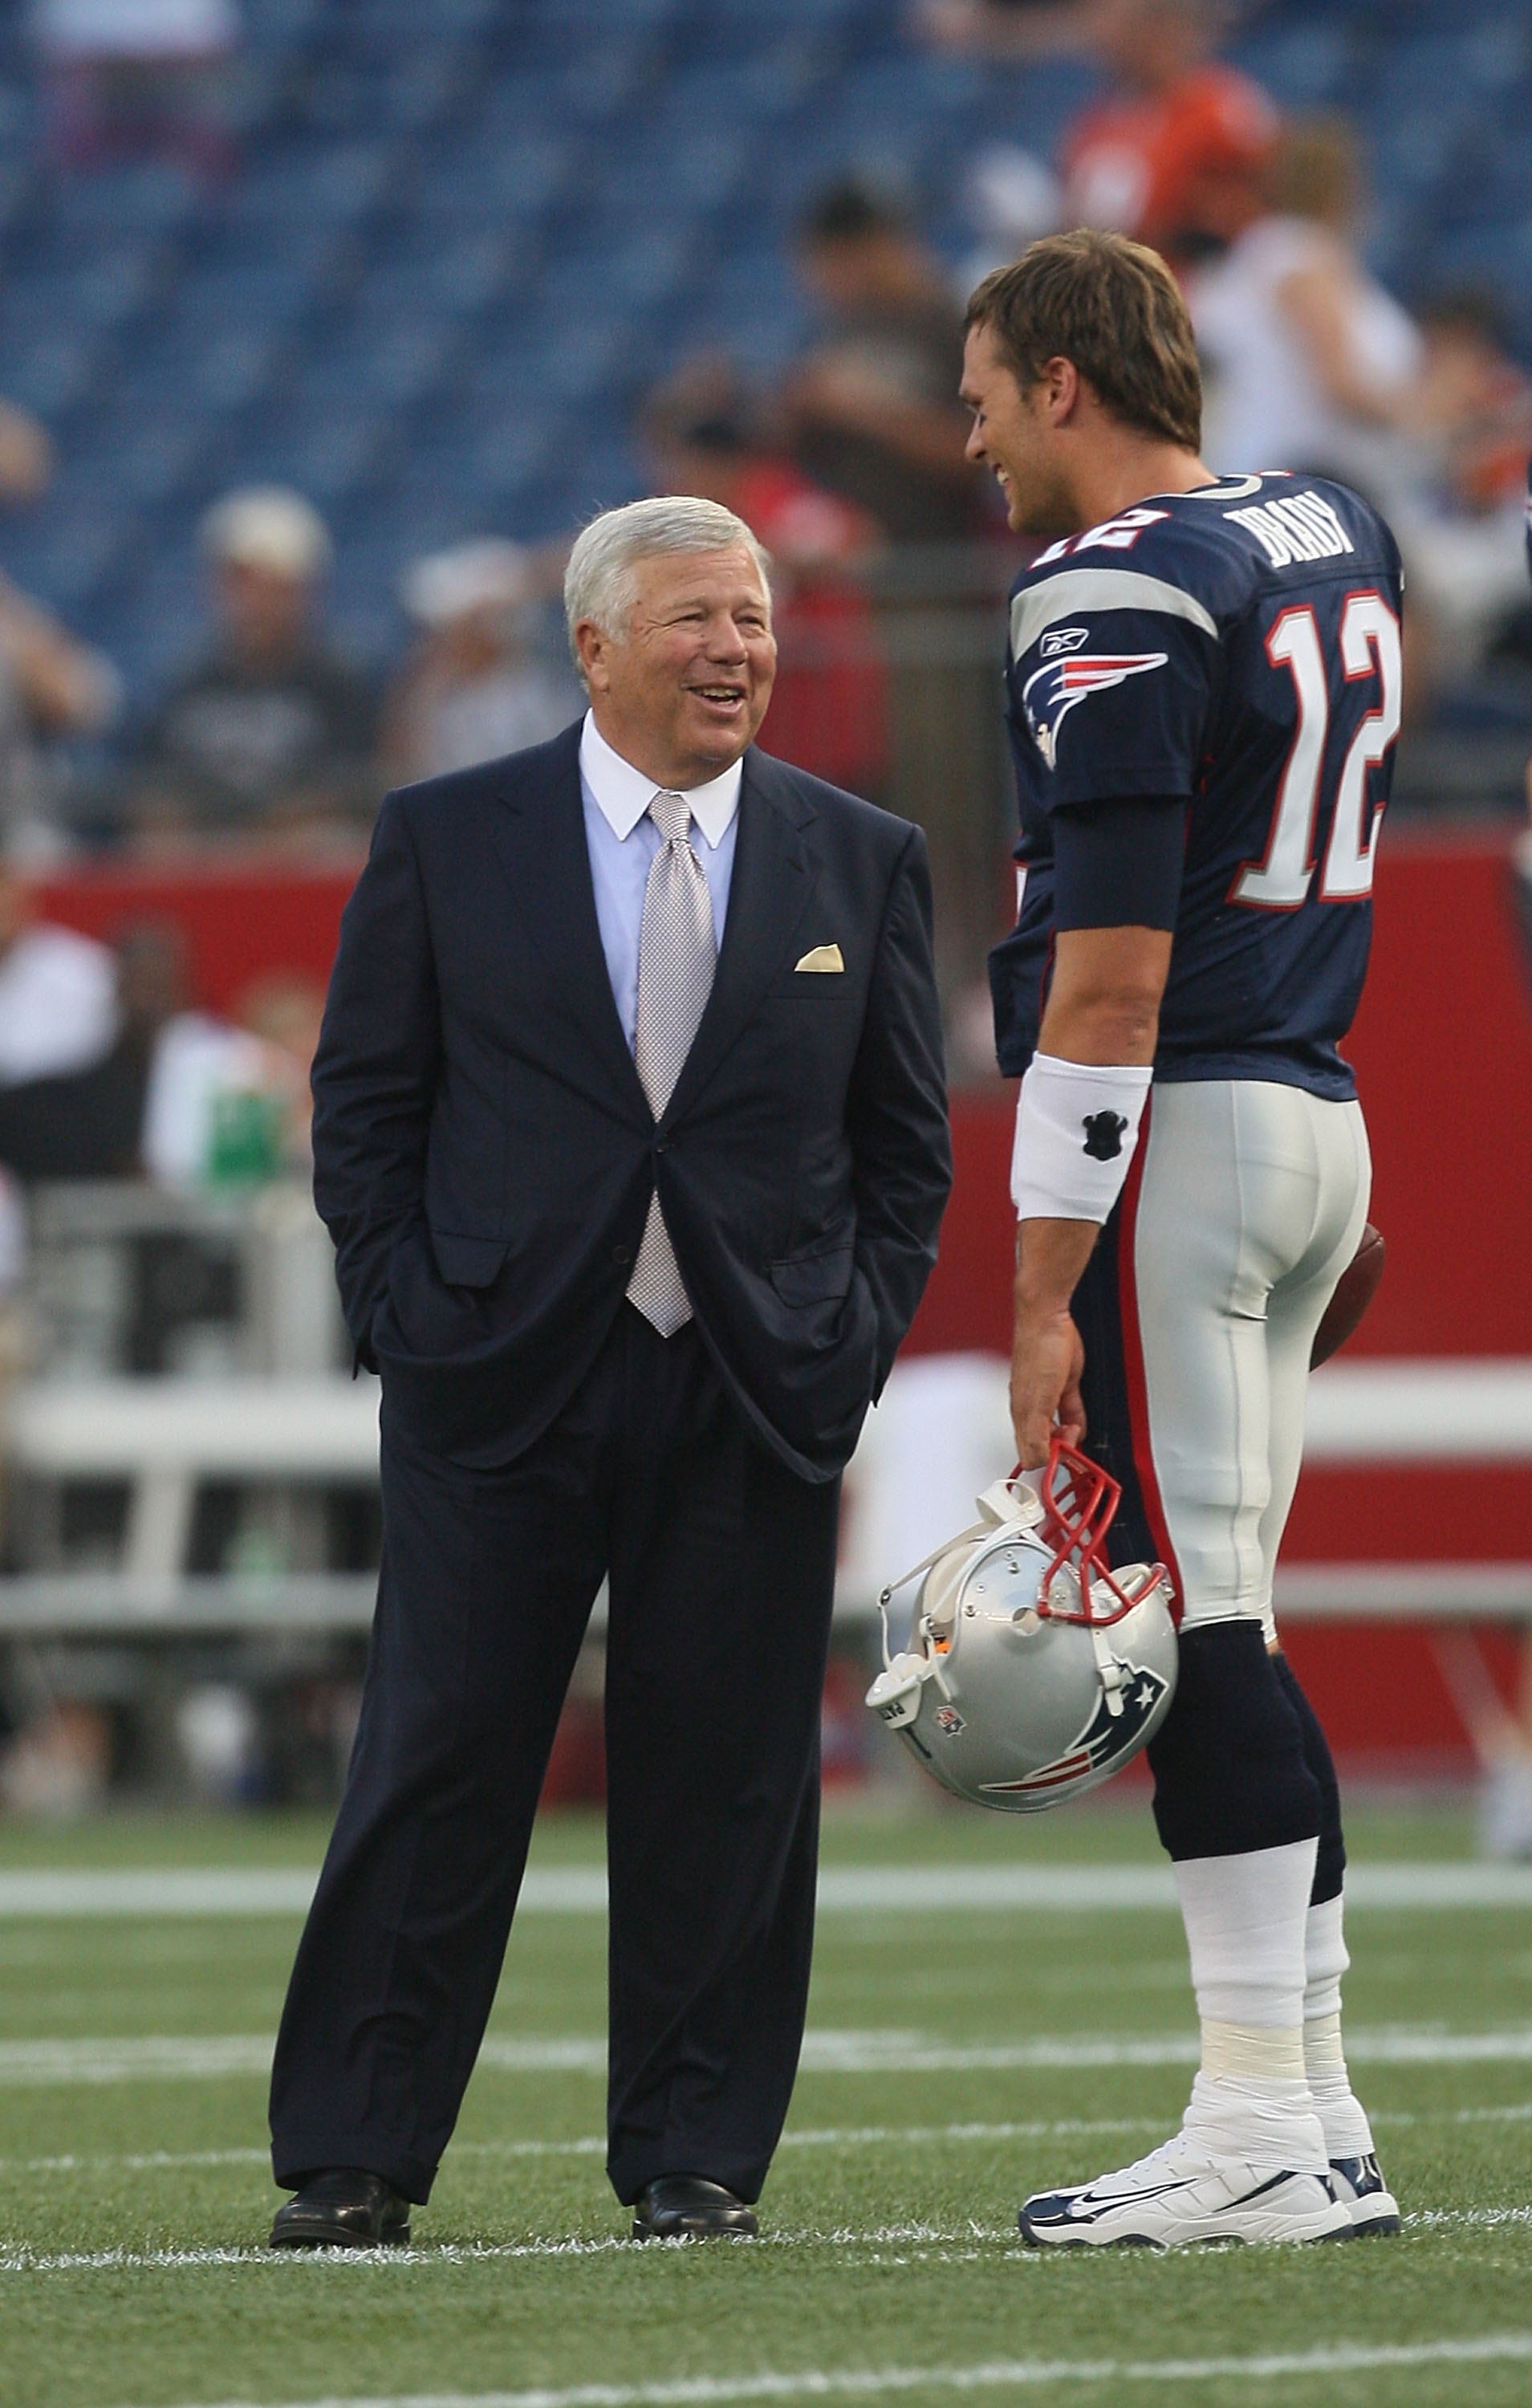 FOXBORO, MA - AUGUST 20:  Tom Brady #12 of the New England Patriots chats with owner Robert Kraft before a game against the Cincinnati Bengals at Gillette Stadium on August 20, 2009 in Foxboro, Massachusetts. (Photo by Jim Rogash/Getty Images)